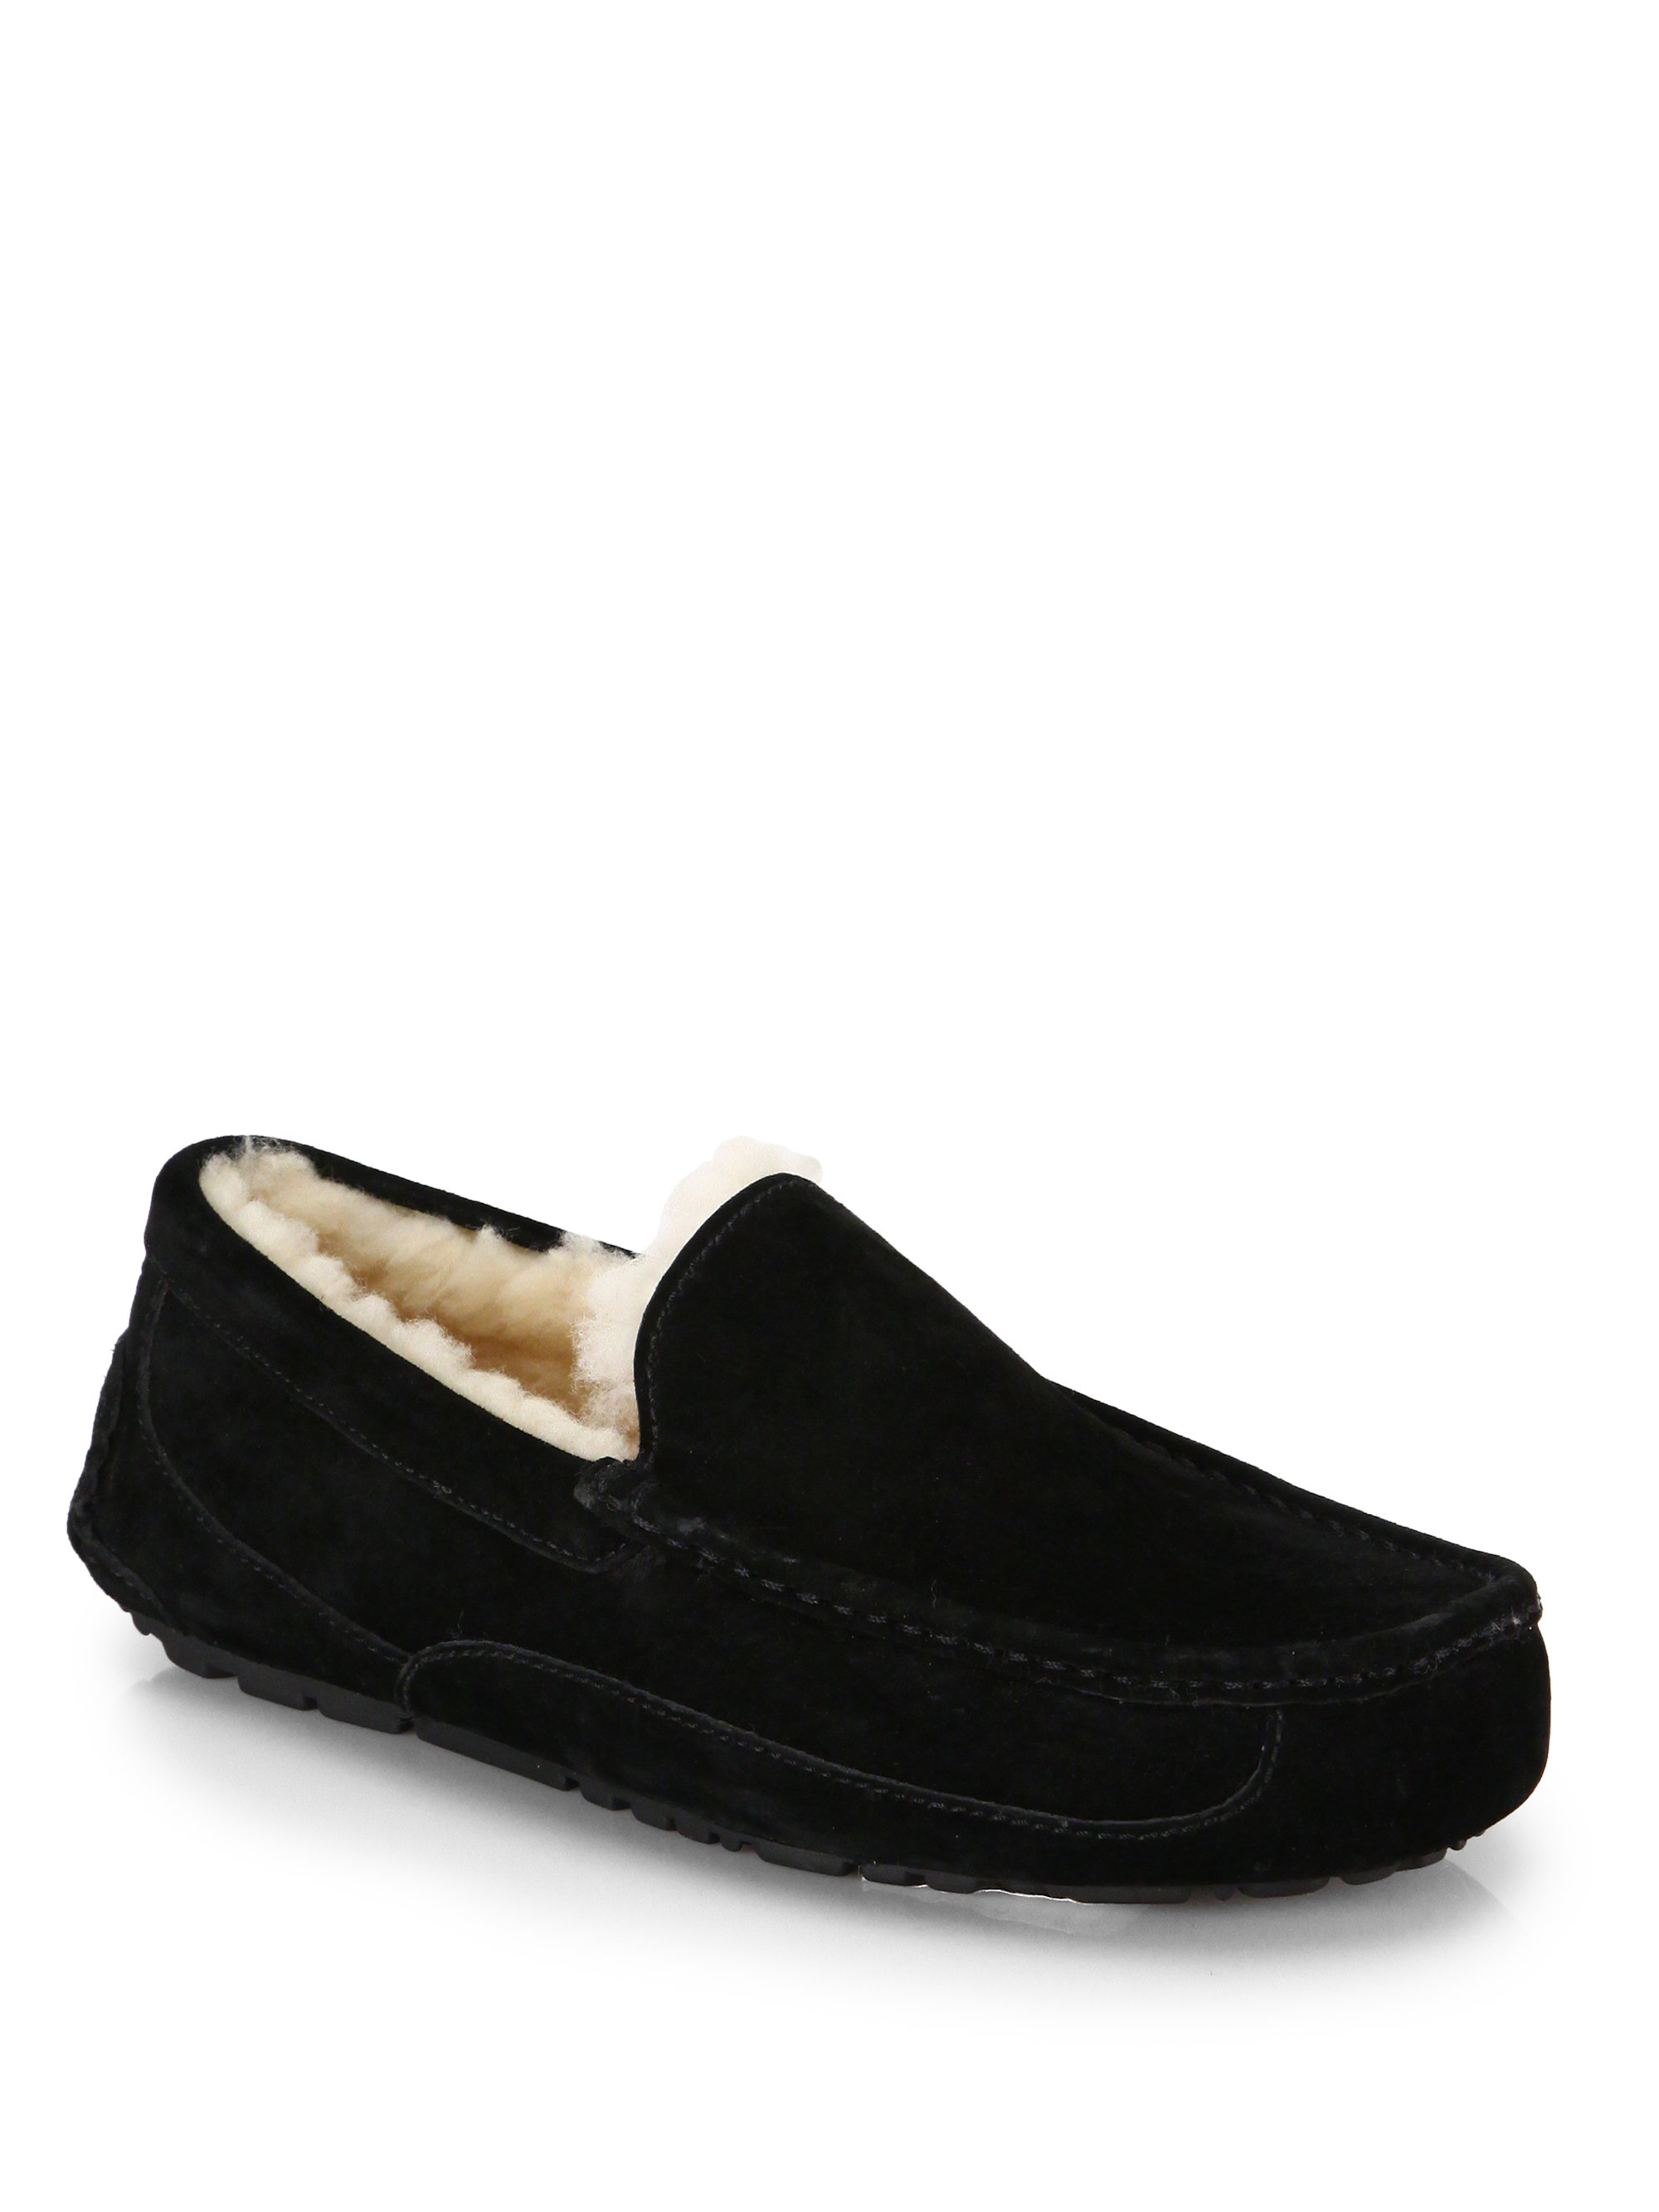 ugg ascot suede shearling slippers in black lyst